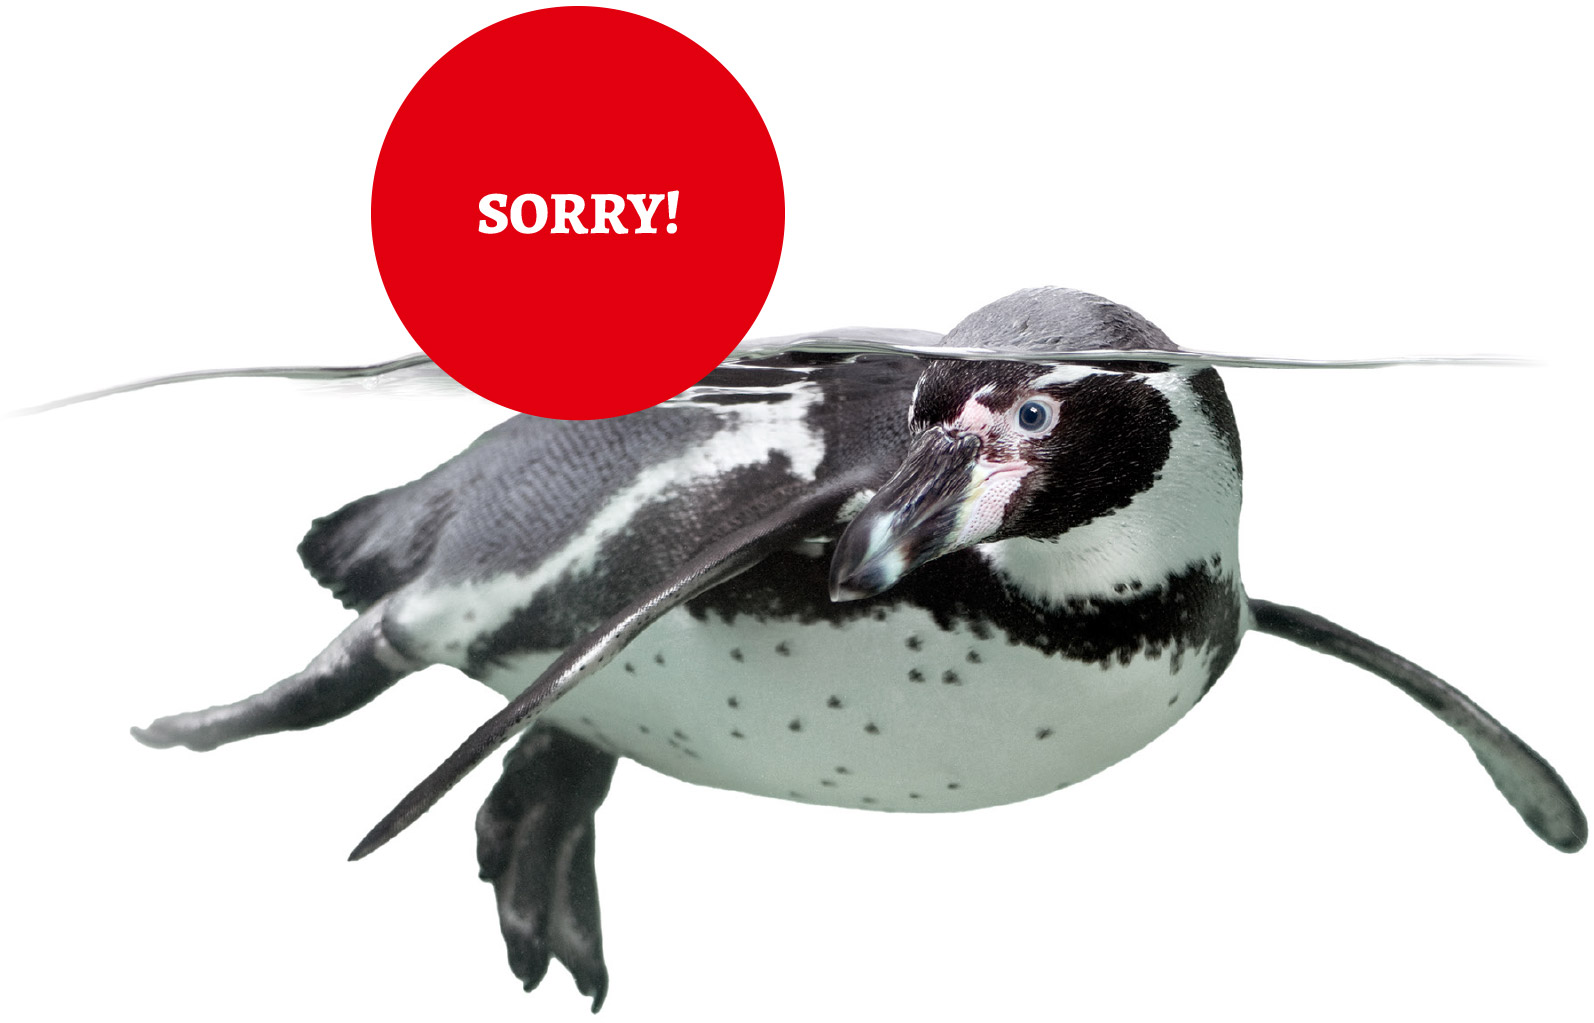 sorry-closed-penguin